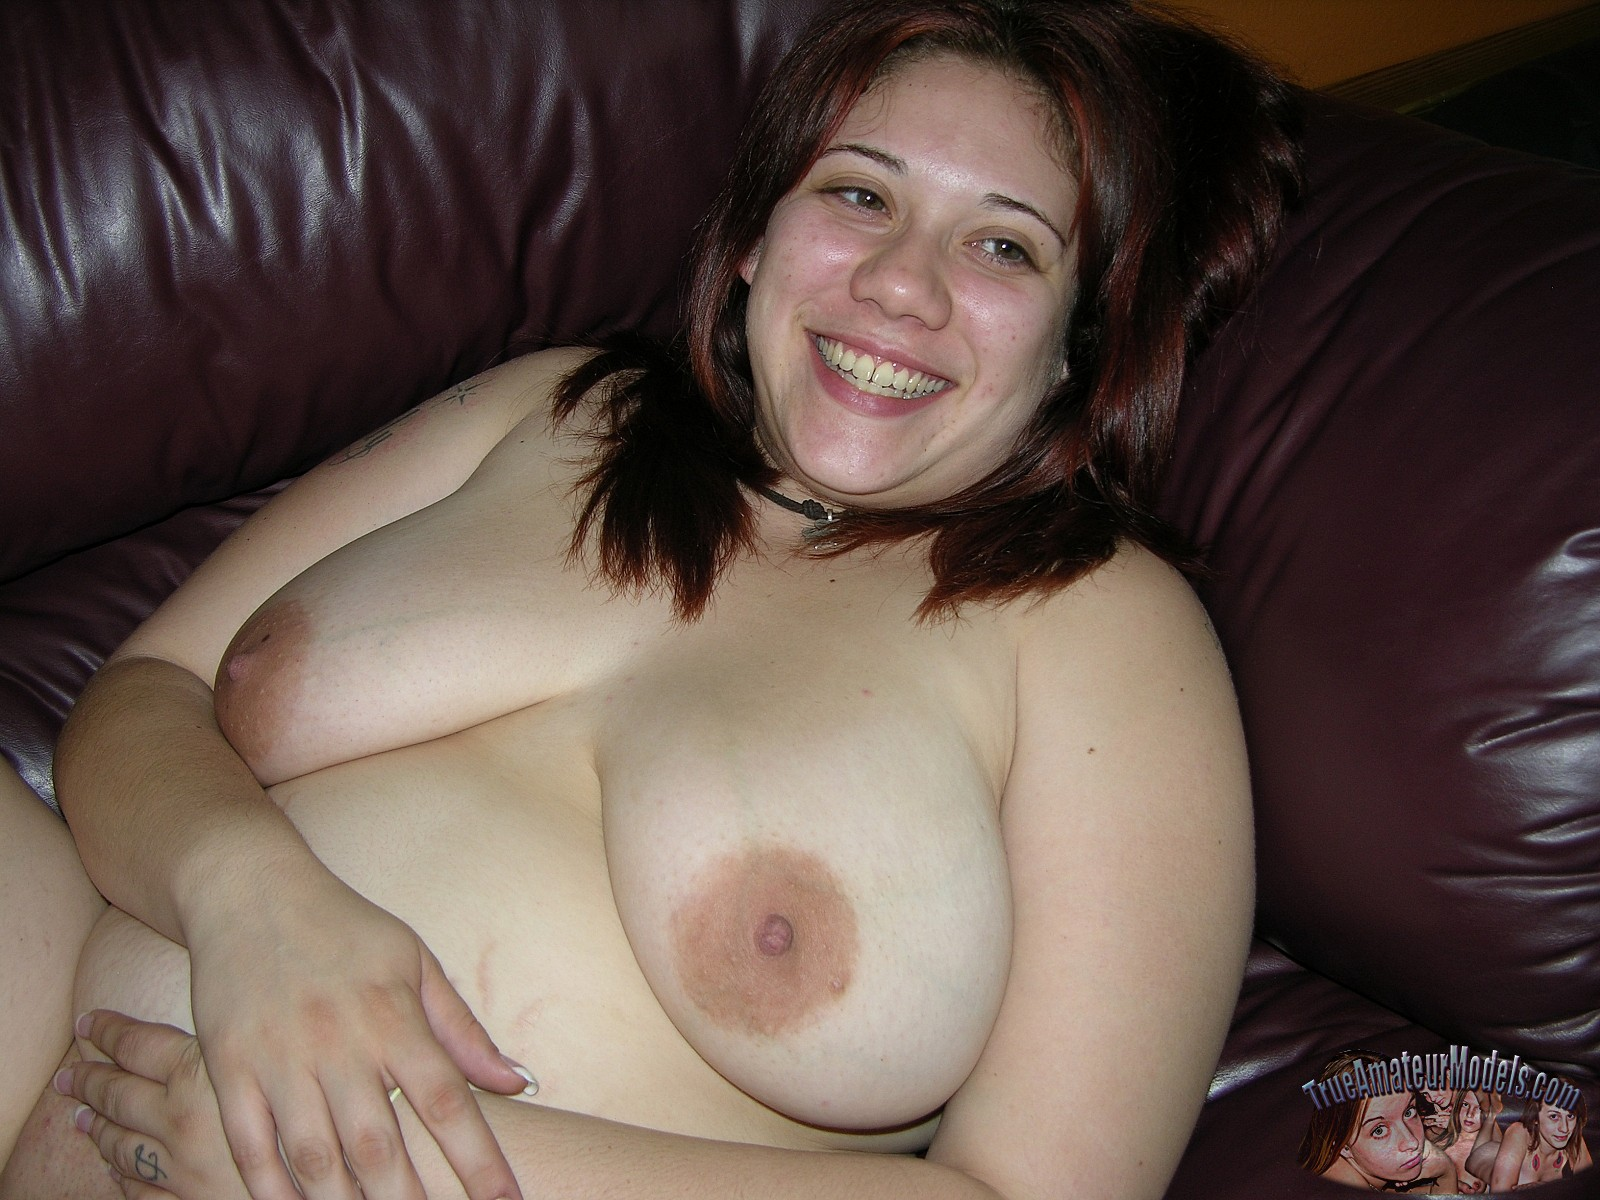 Chubby girls nude model commit